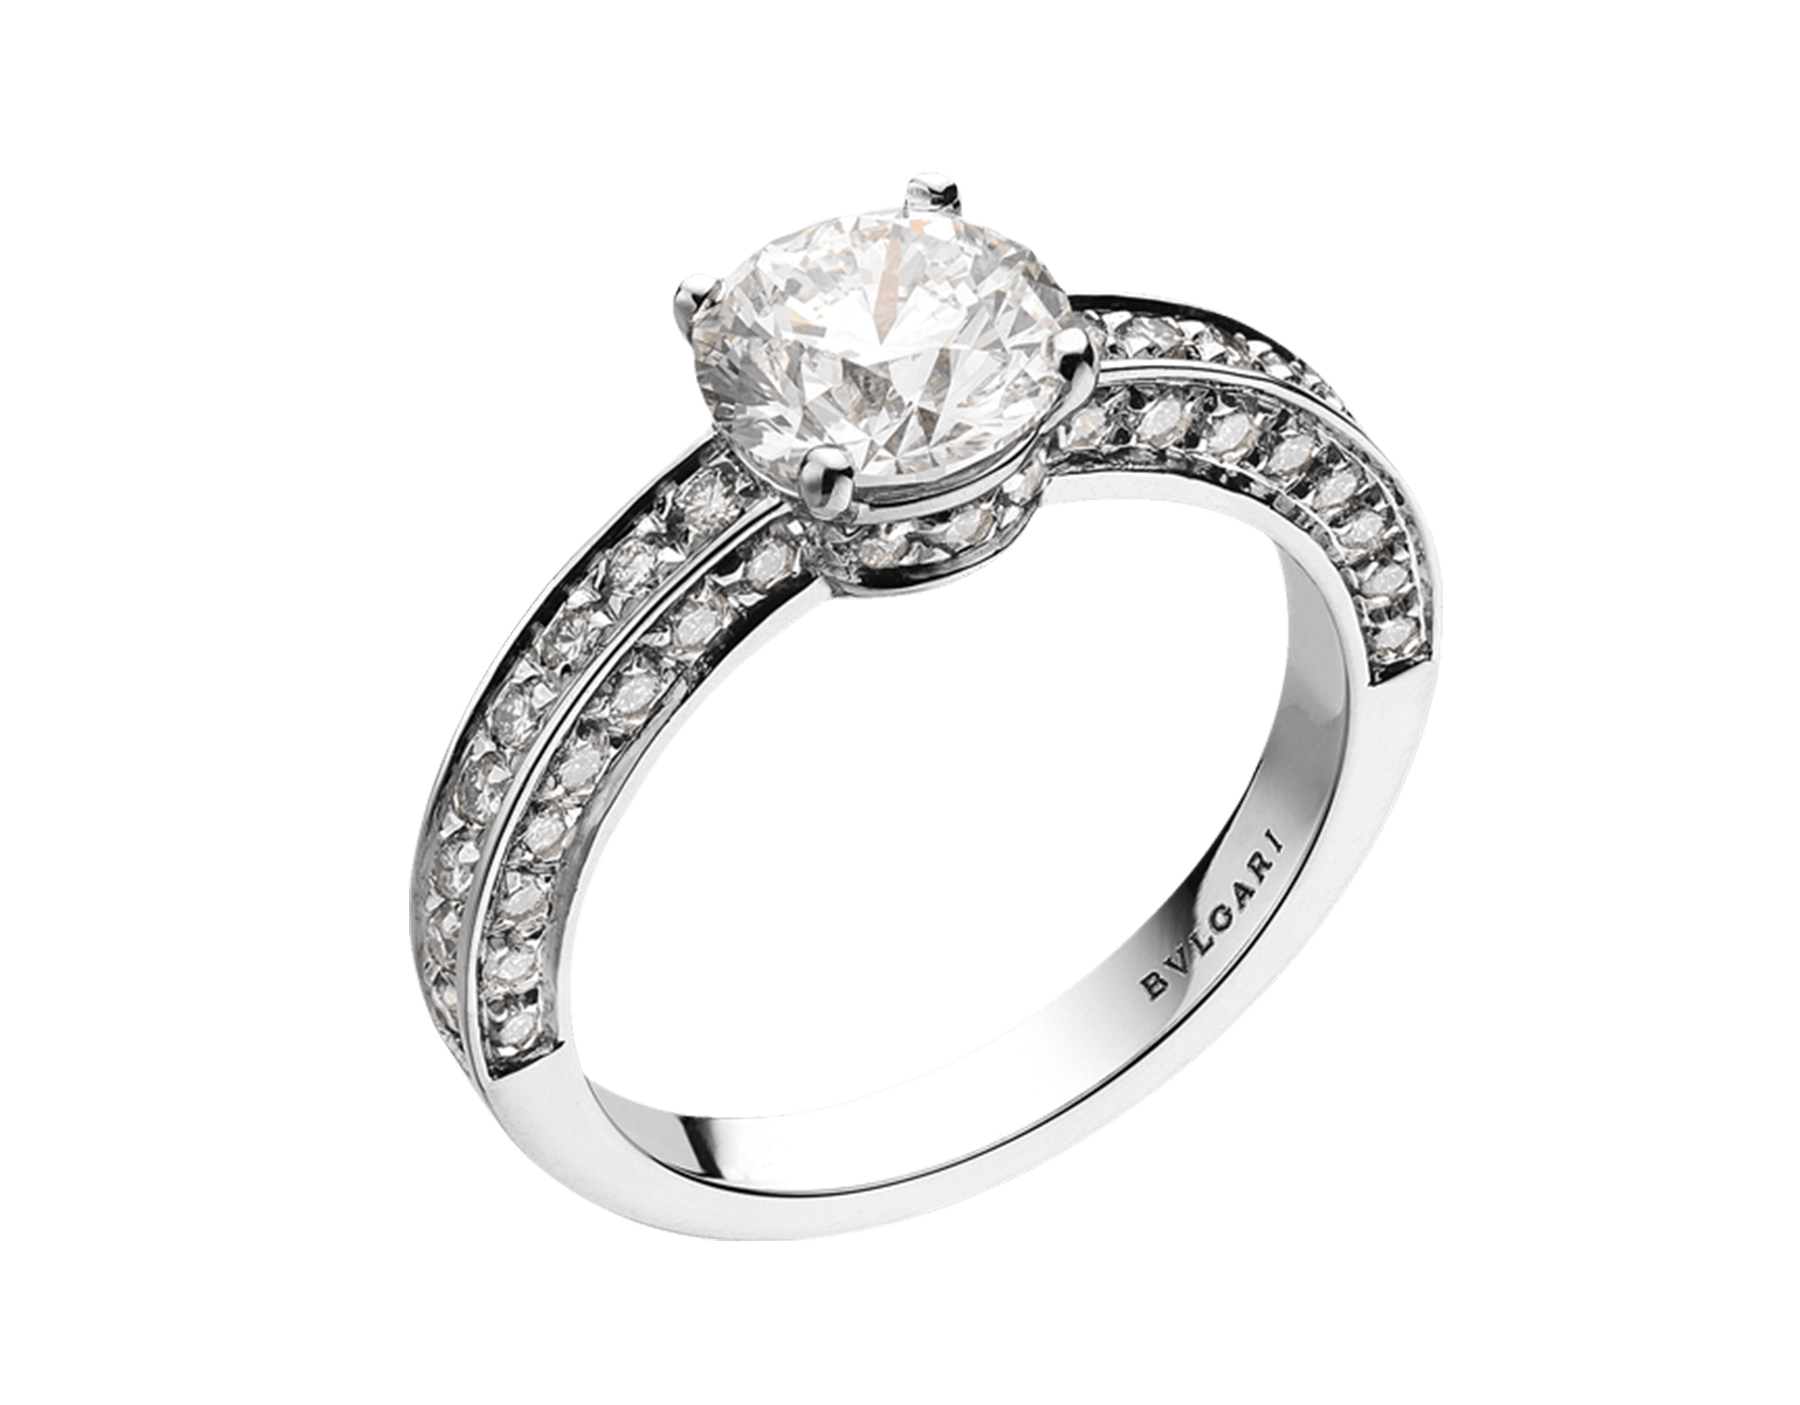 Dedicata a Venezia: 1503 solitaire ring in platinum with a round brilliant-cut diamond and pavé diamonds. Available from 0.30 ct. Named after the year in which the first engagement ring was offered in Venice. 344083 image 1